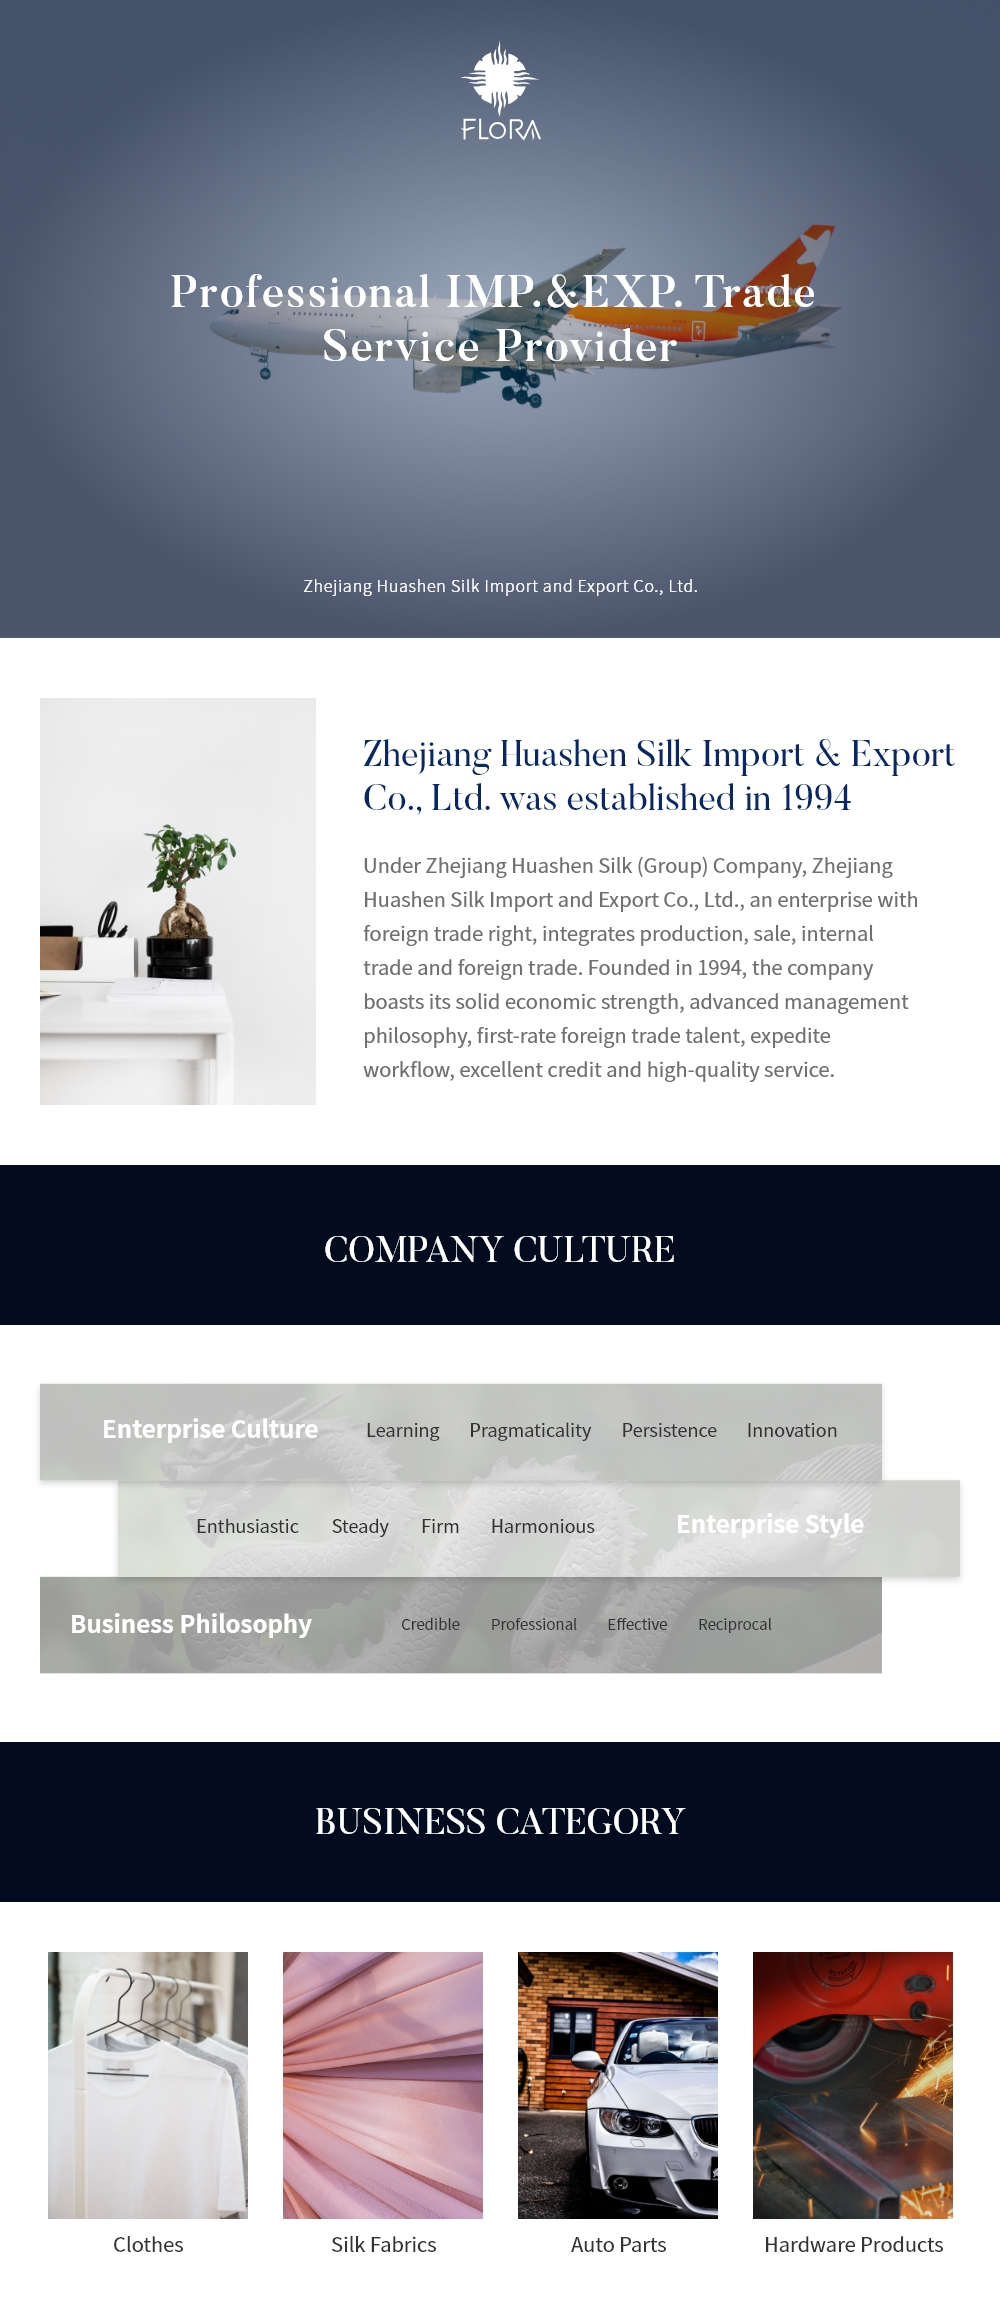 ZHEJIANG HUASHEN SILK IMP.&EXP.CO.,LTD.